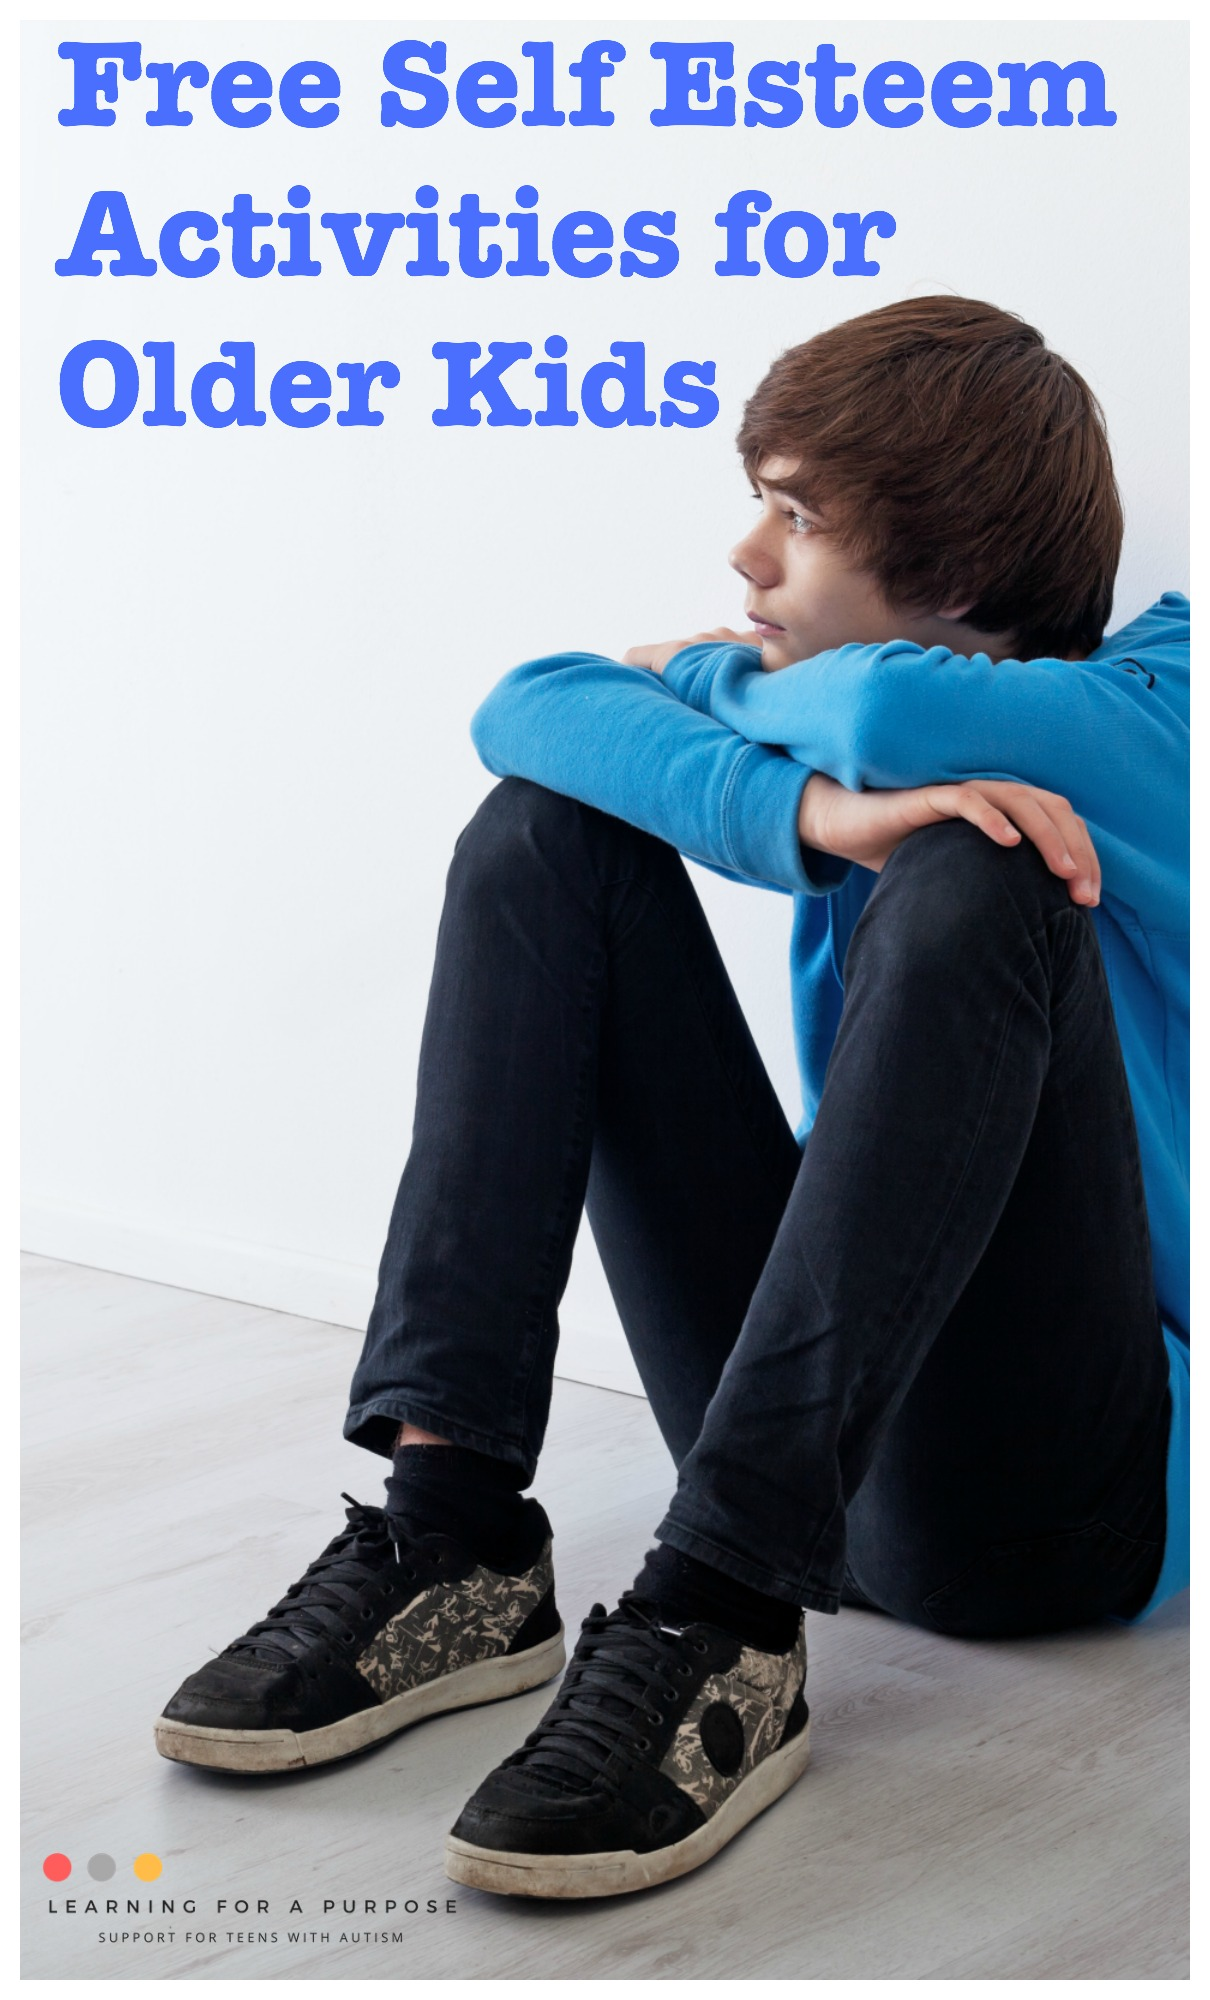 Free Self Esteem Activities for Older Kids #selfesteem #teens